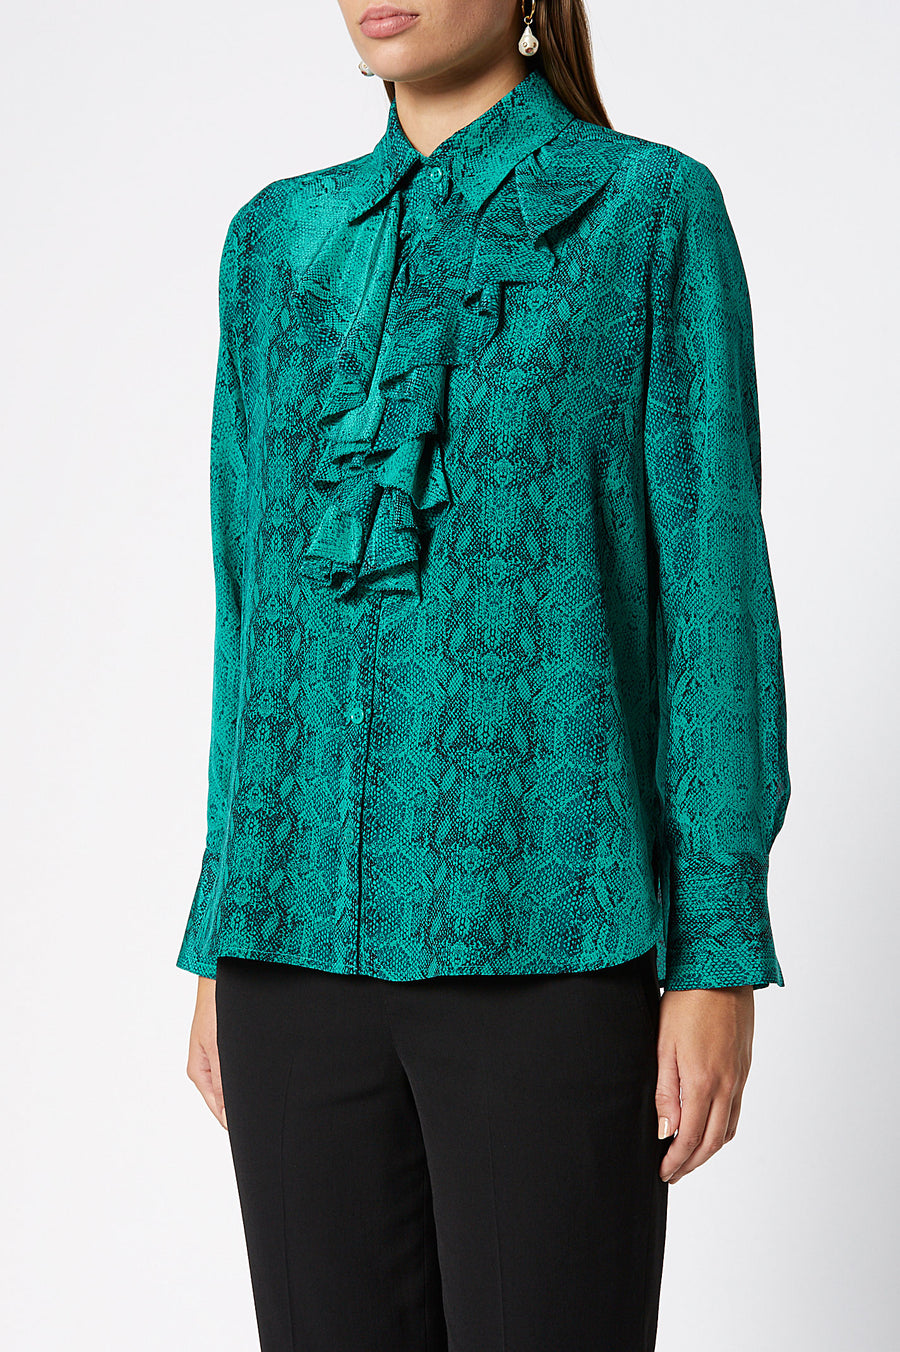 CDC Reptile Print Blouse, long sleeves, collared neck, ruffles through front, long sleeve, color emerald